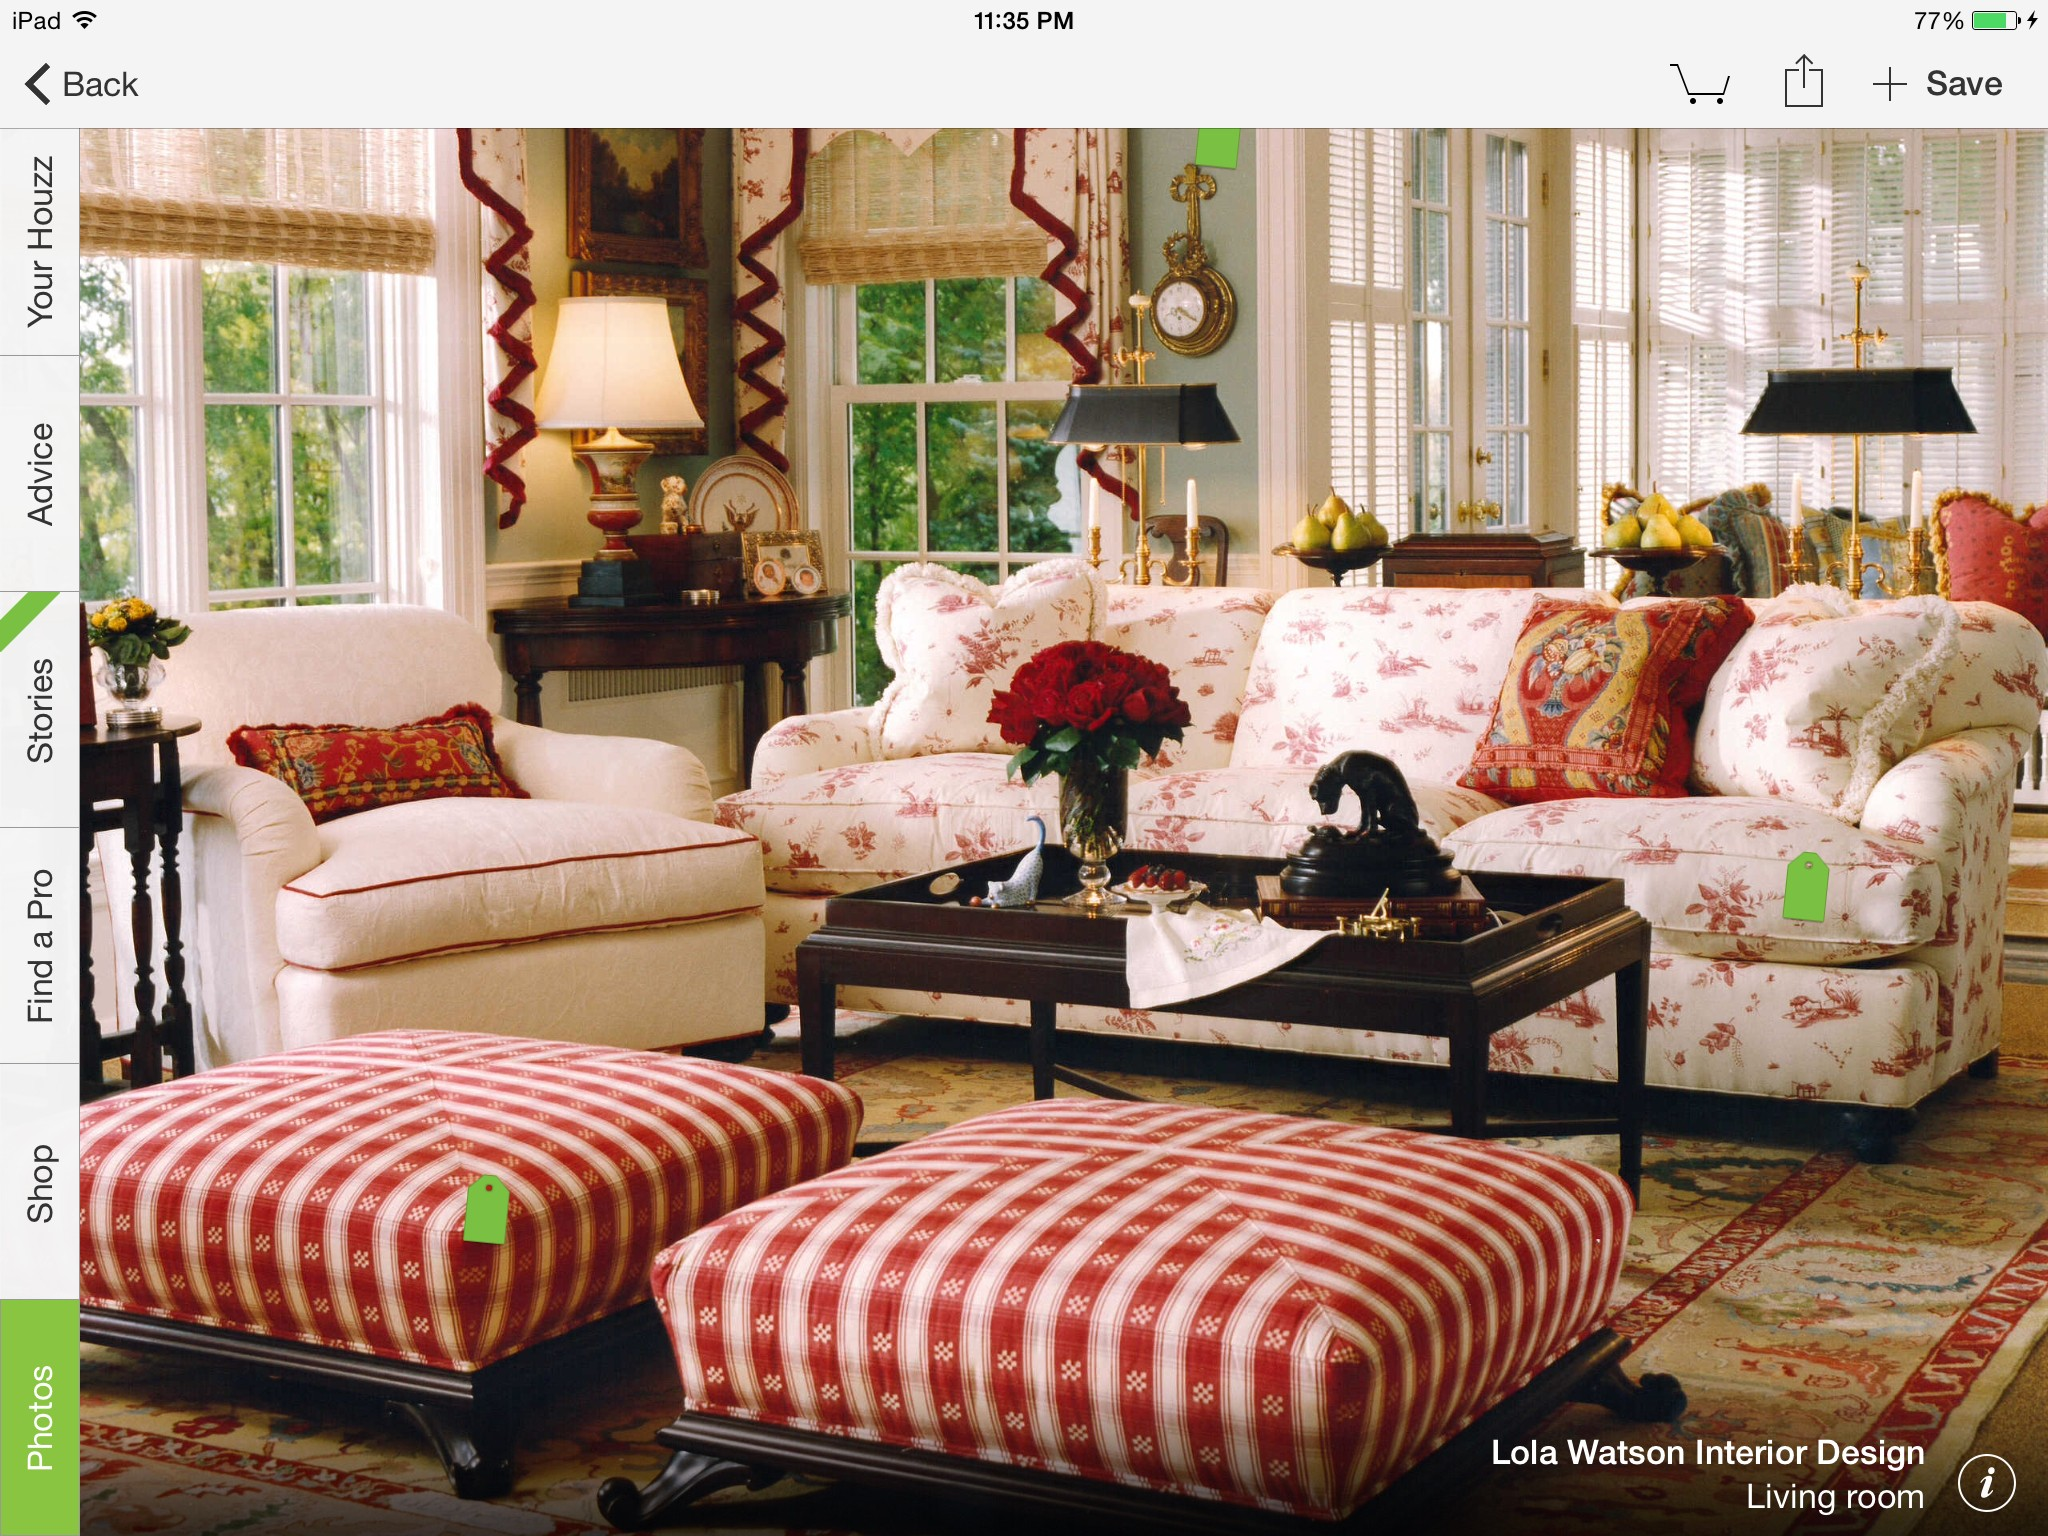 Country cottage style furniture Large Size Best Decorating Ideas For Country Cottage Furniture Foter 100 Amazing Country Cottage Sofascouch For Sale Ideas On Foter